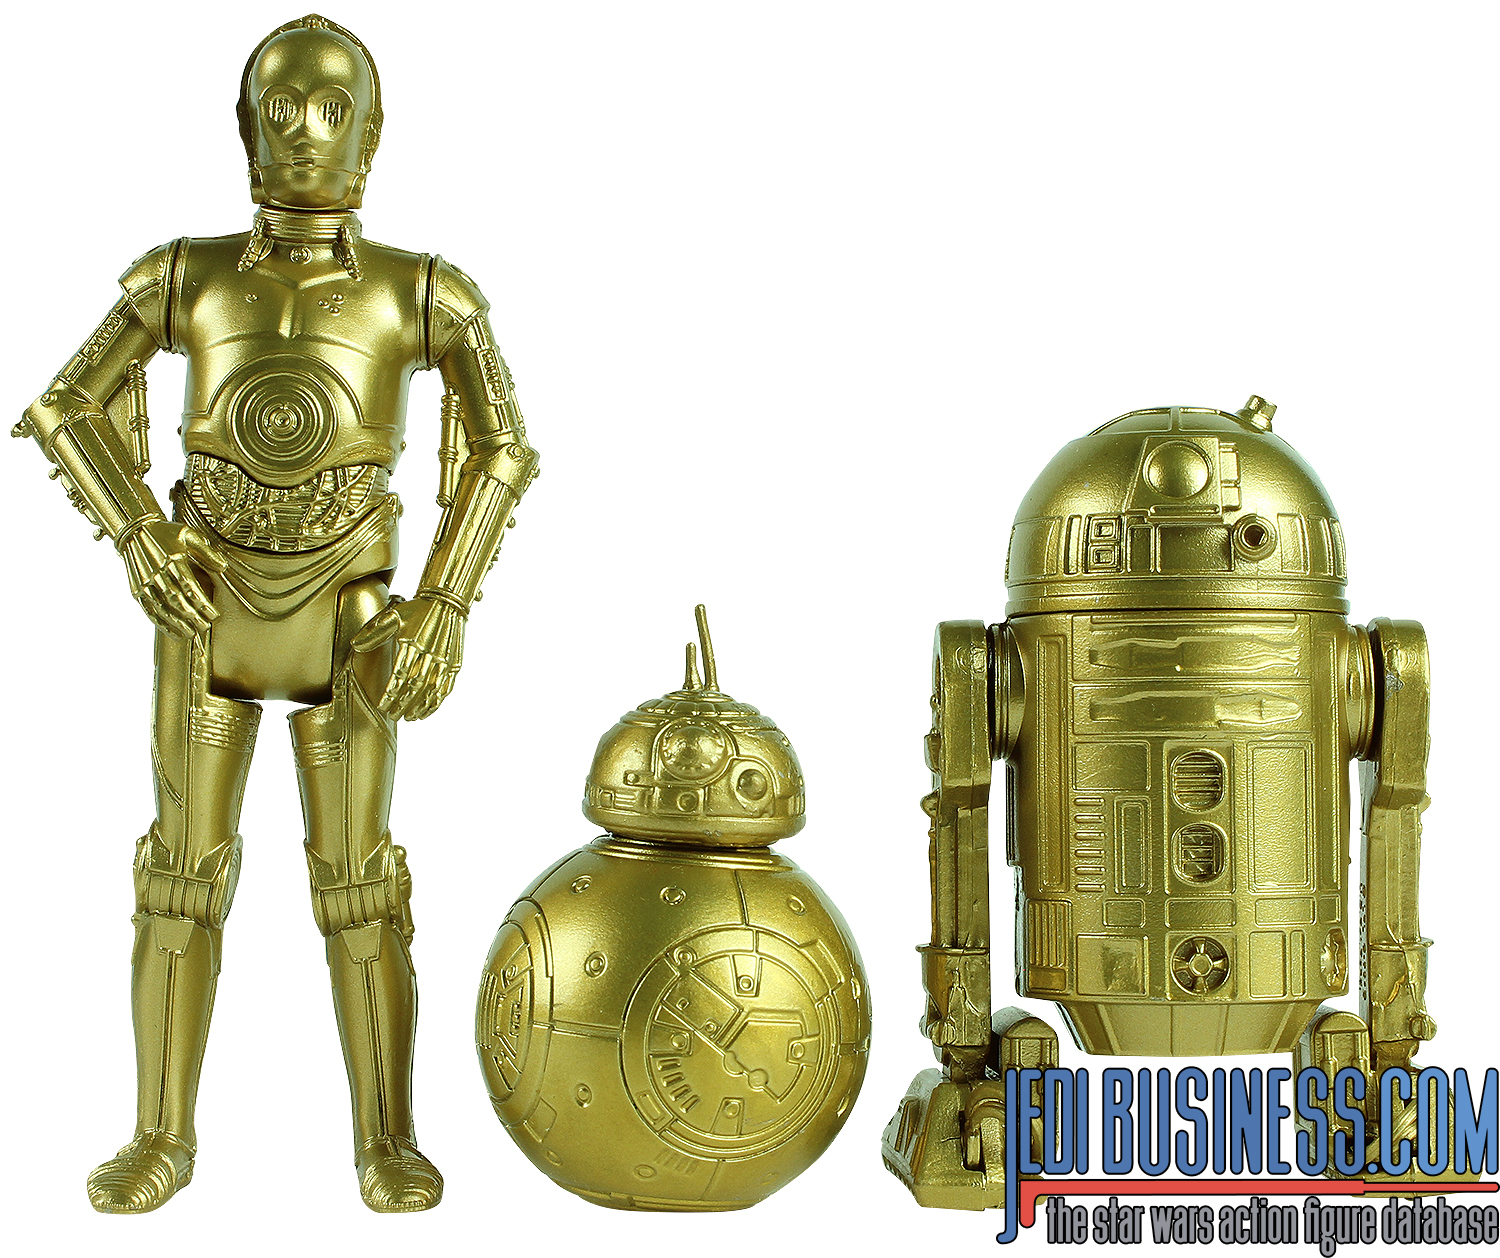 R2-D2 Episode 9 - Bundled With BB-8 And C-3PO